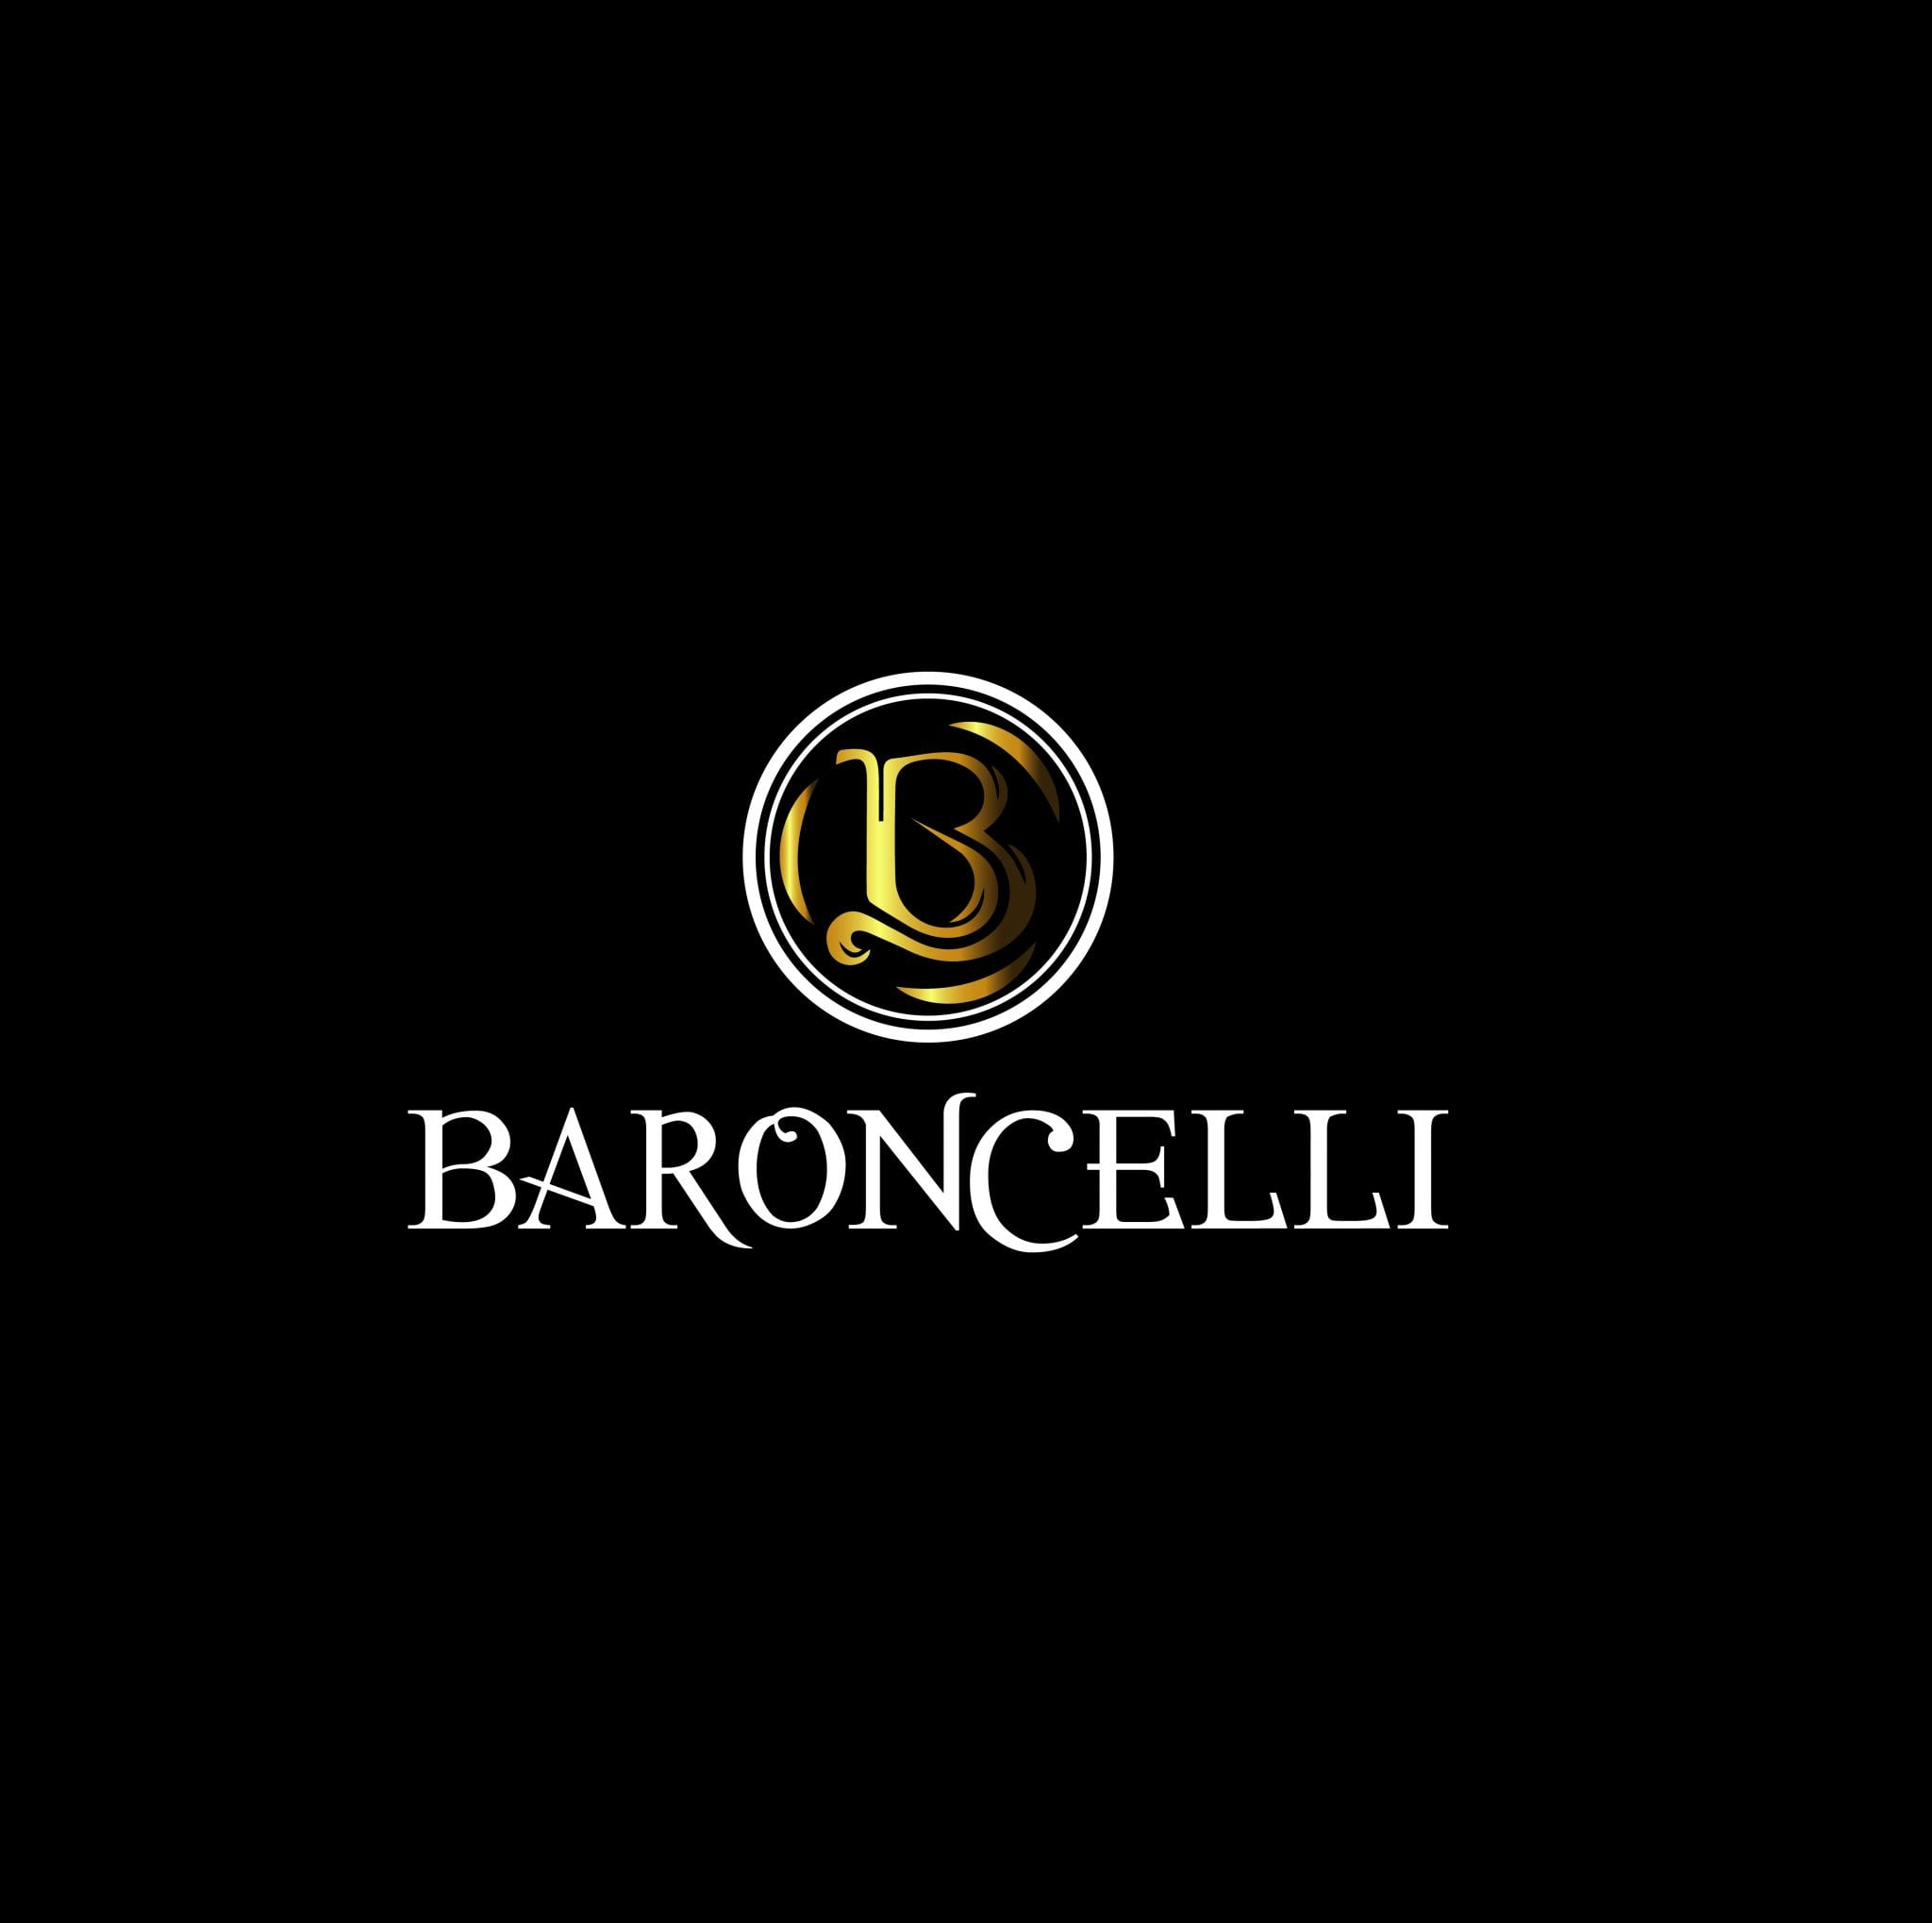 LOGO BARONCELLI final black